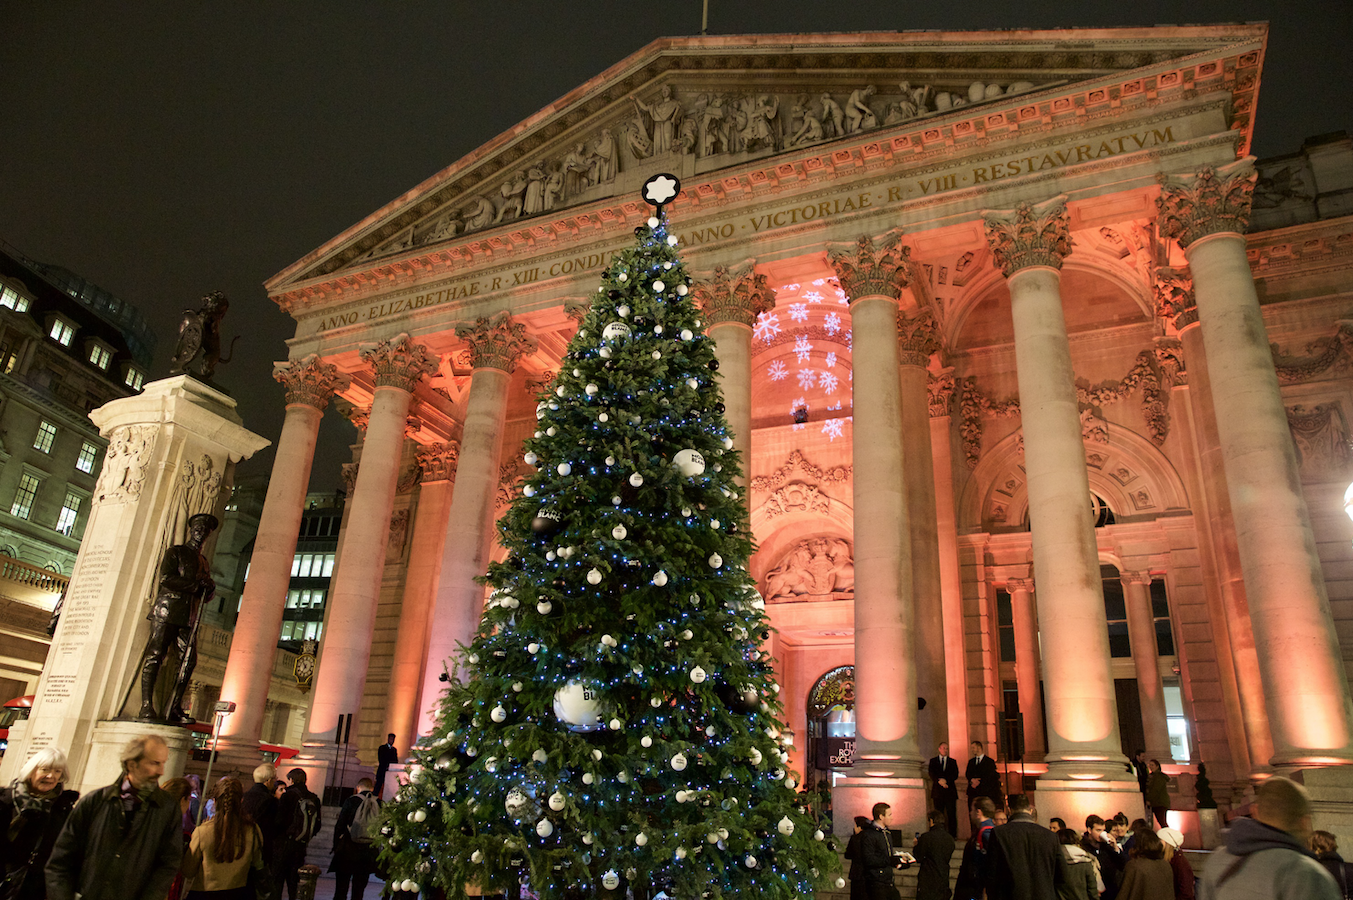 Things To Do In London Today Your Guide To The Best Of London - 6 christmas attractions you can visit year round